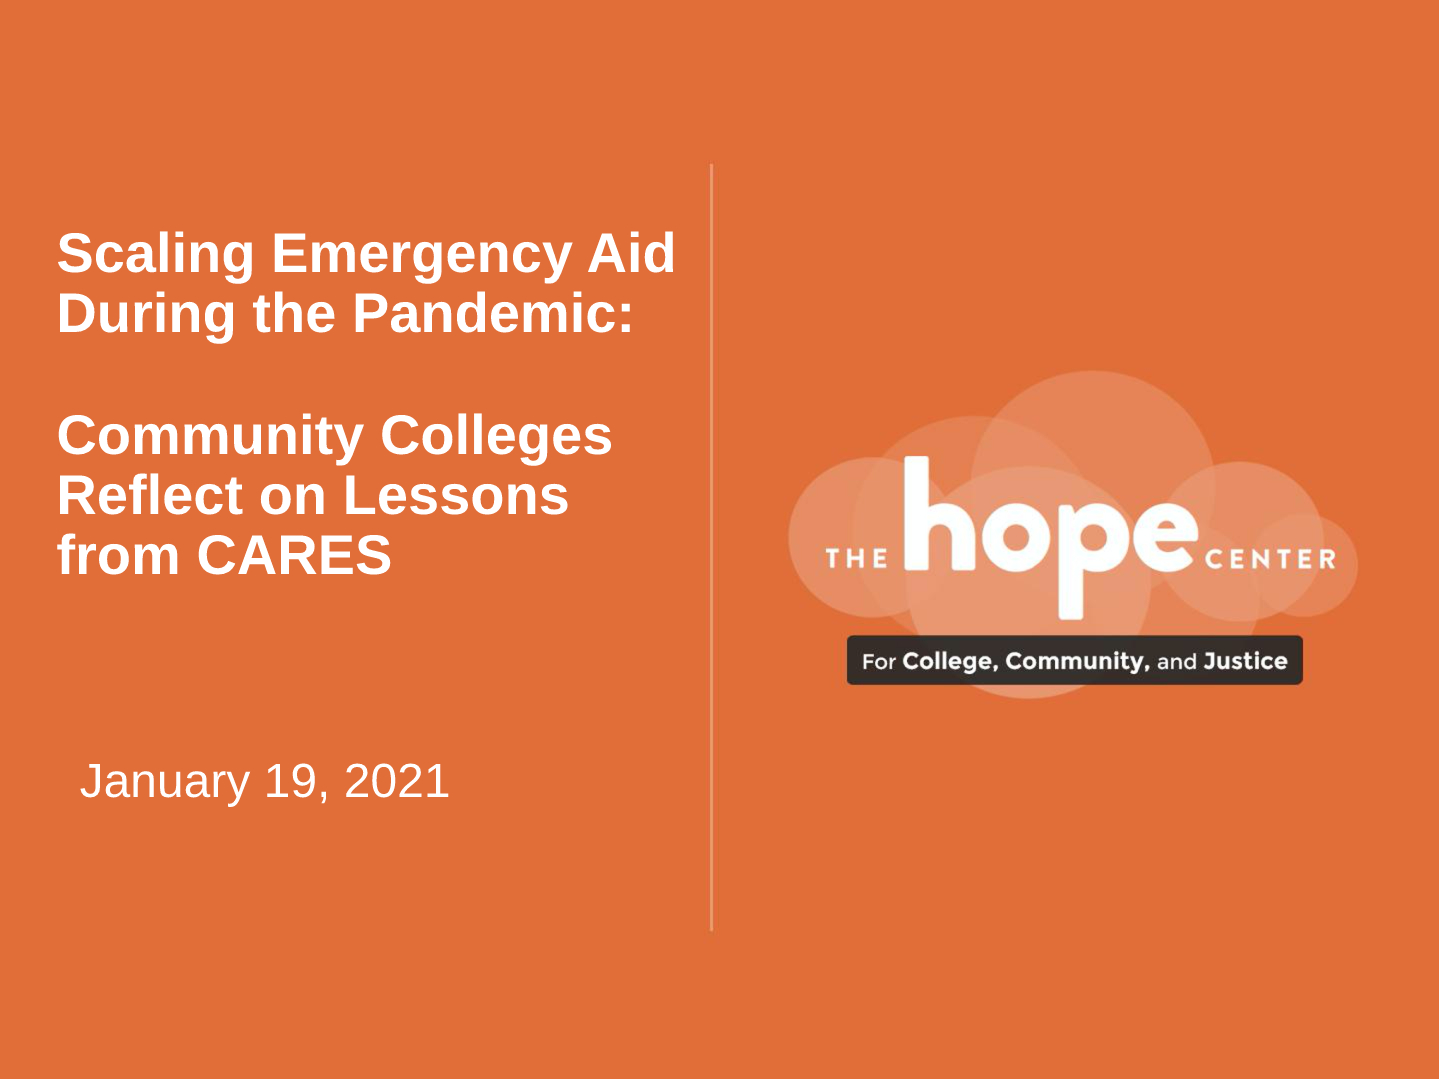 Scaling Emergency Aid During the Pandemic: Community Colleges Reflect on Lessons from CARES